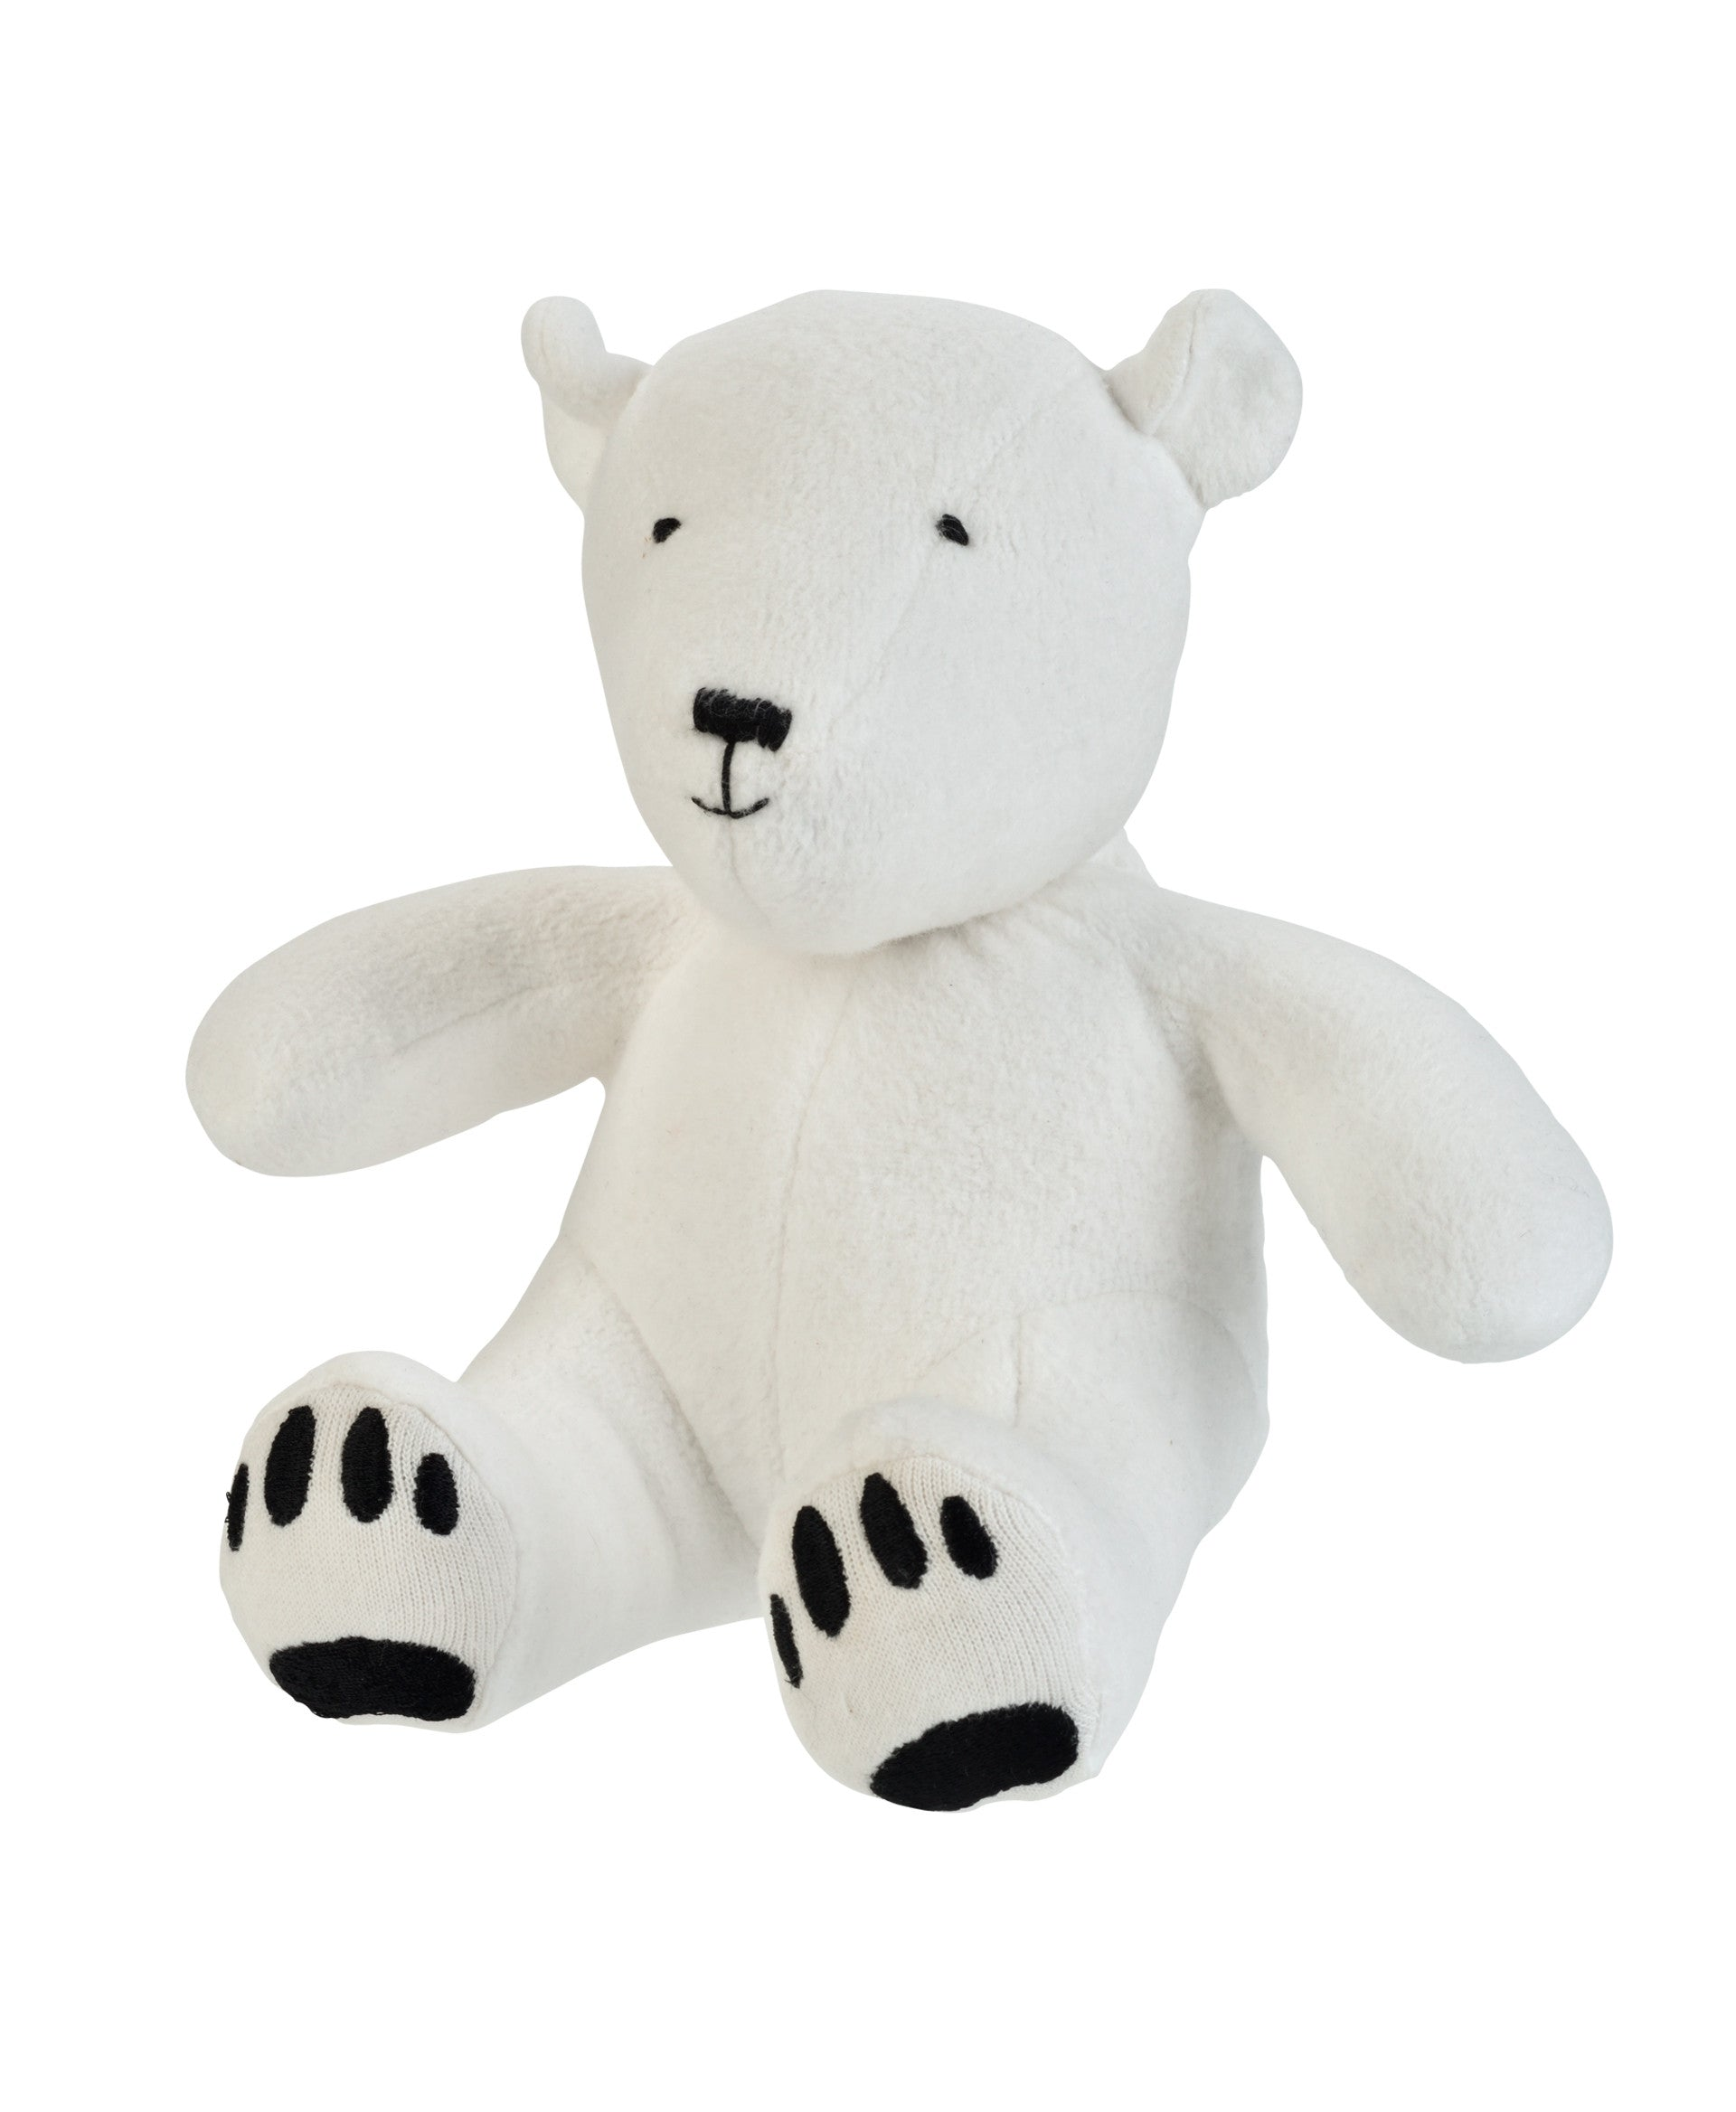 organic-stuffed-animal-polar-bear-toy